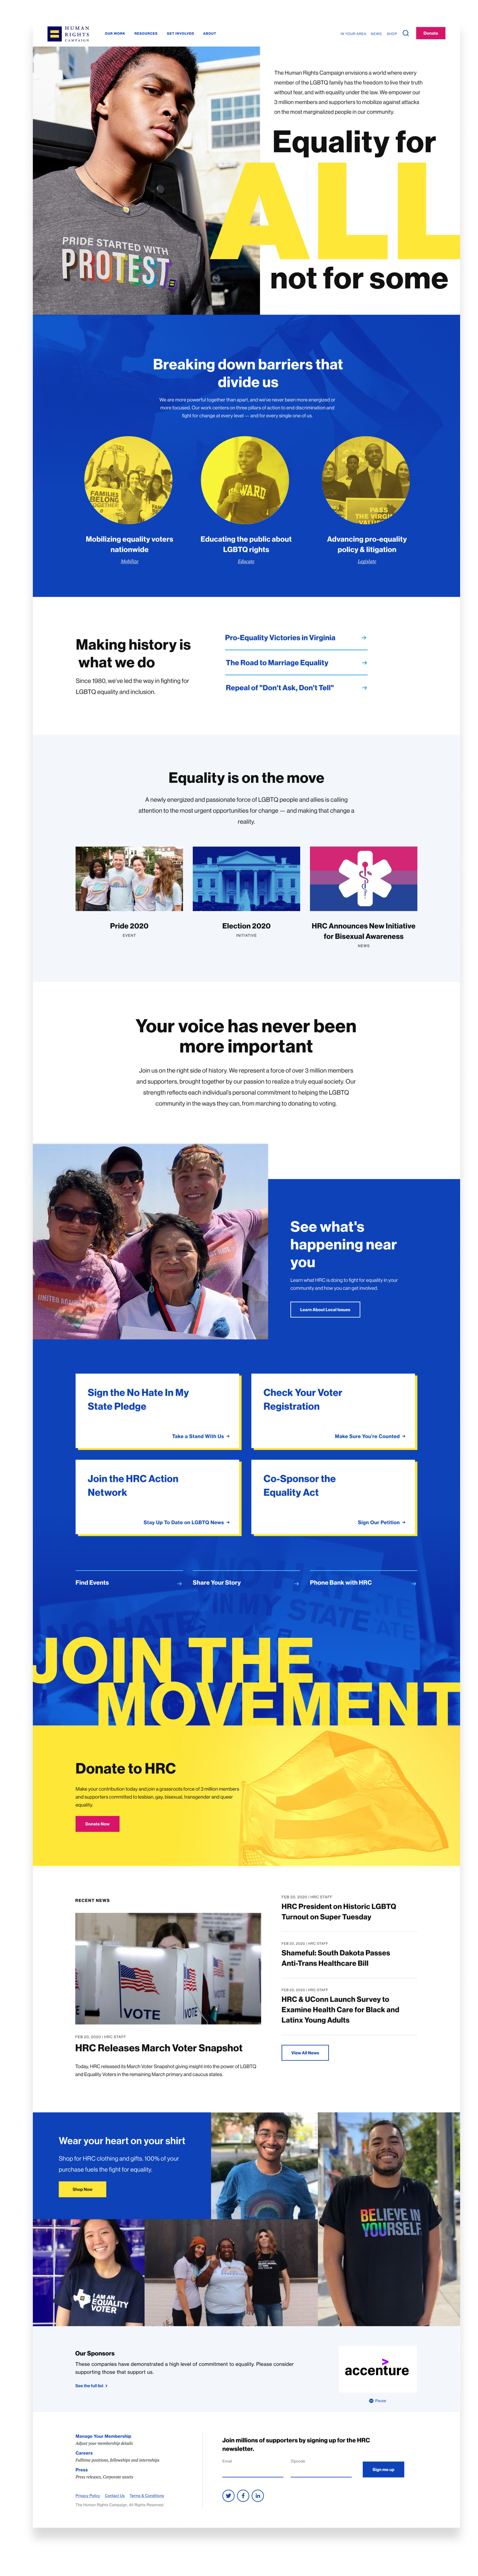 An image of the HRC homepage